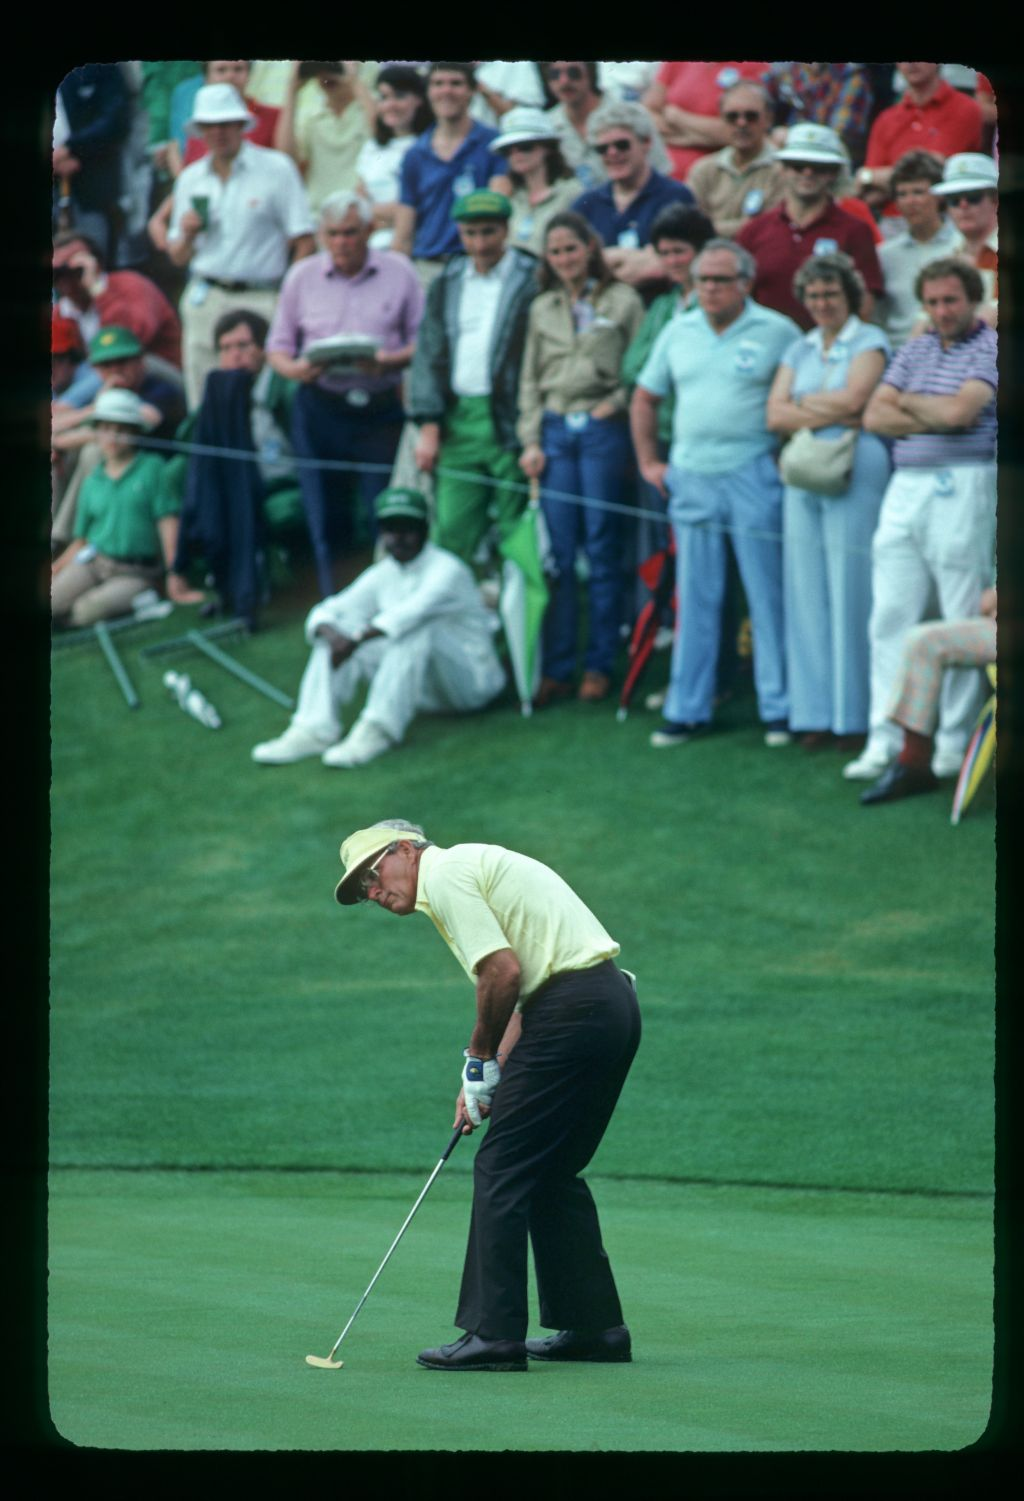 Arnold Palmer putting at the Masters Championship